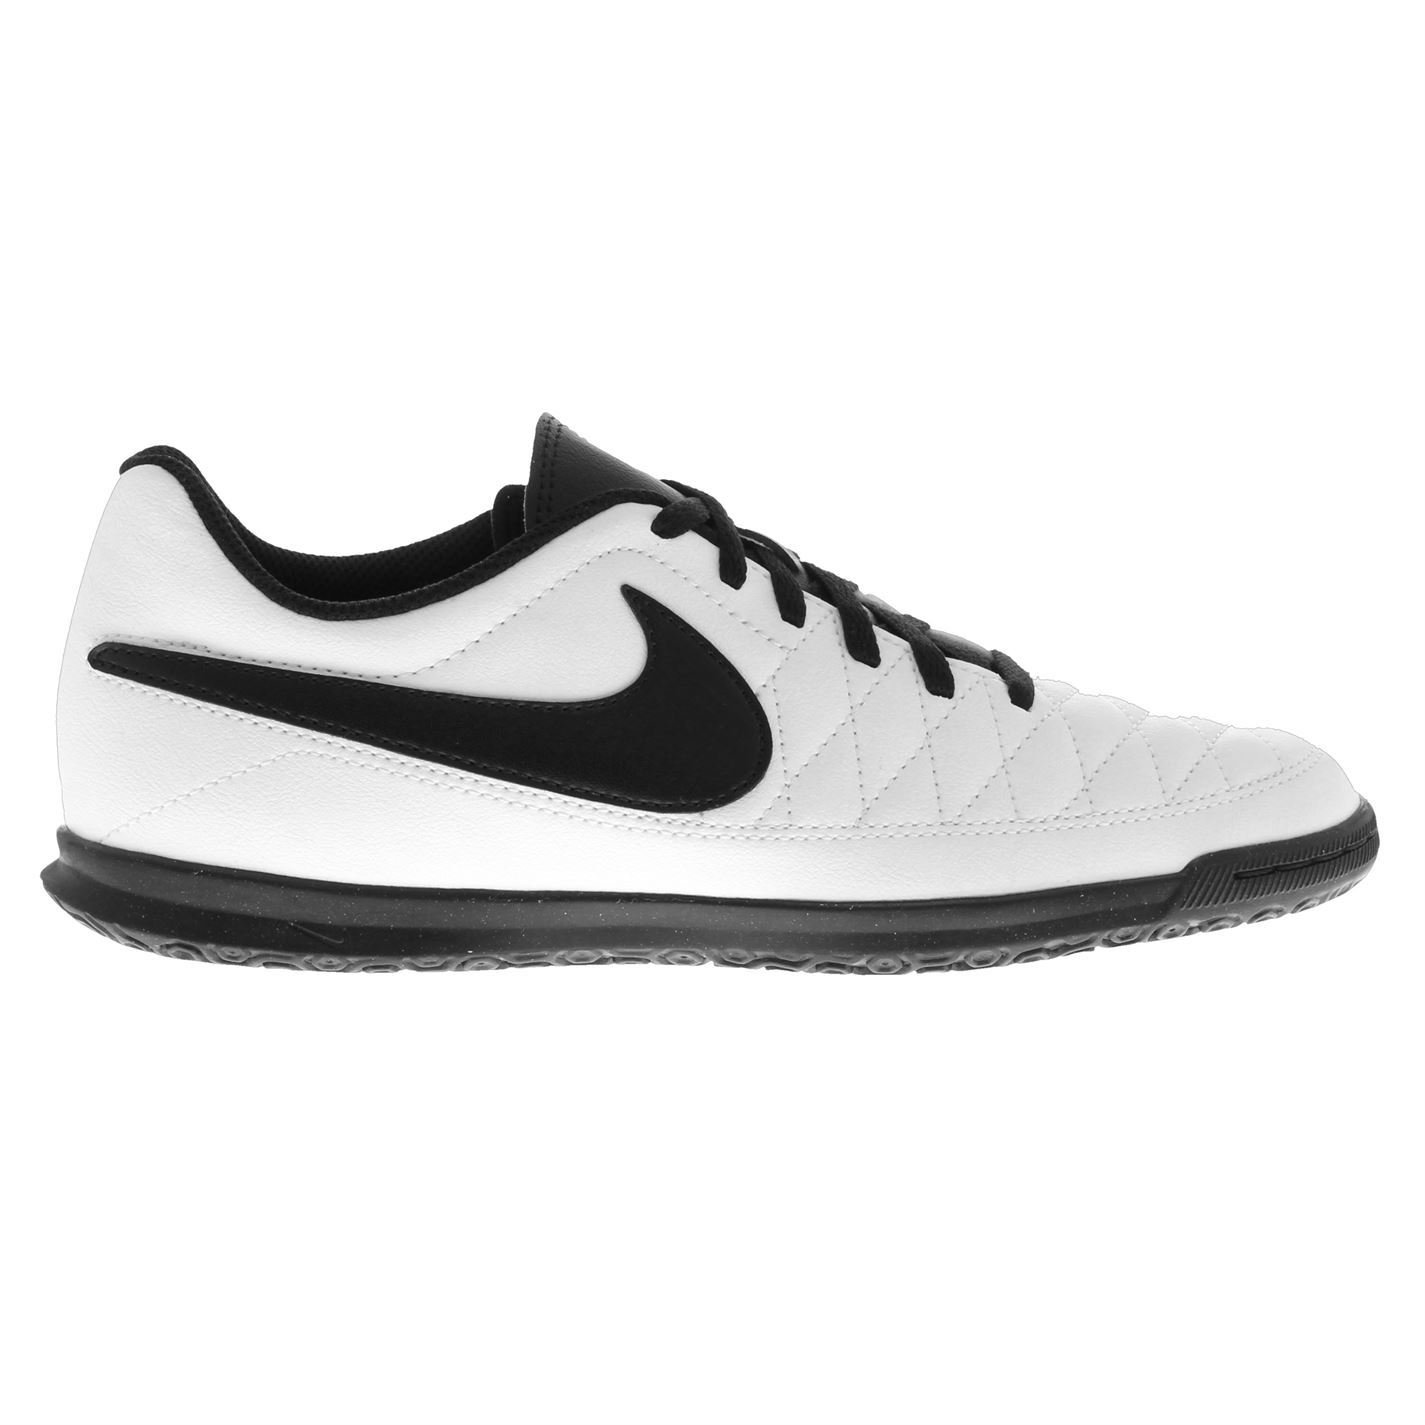 Nike-majestry-Indoor-Football-Baskets-Pour-Homme-Football-Futsal-Chaussures-Baskets-Bottes miniature 31